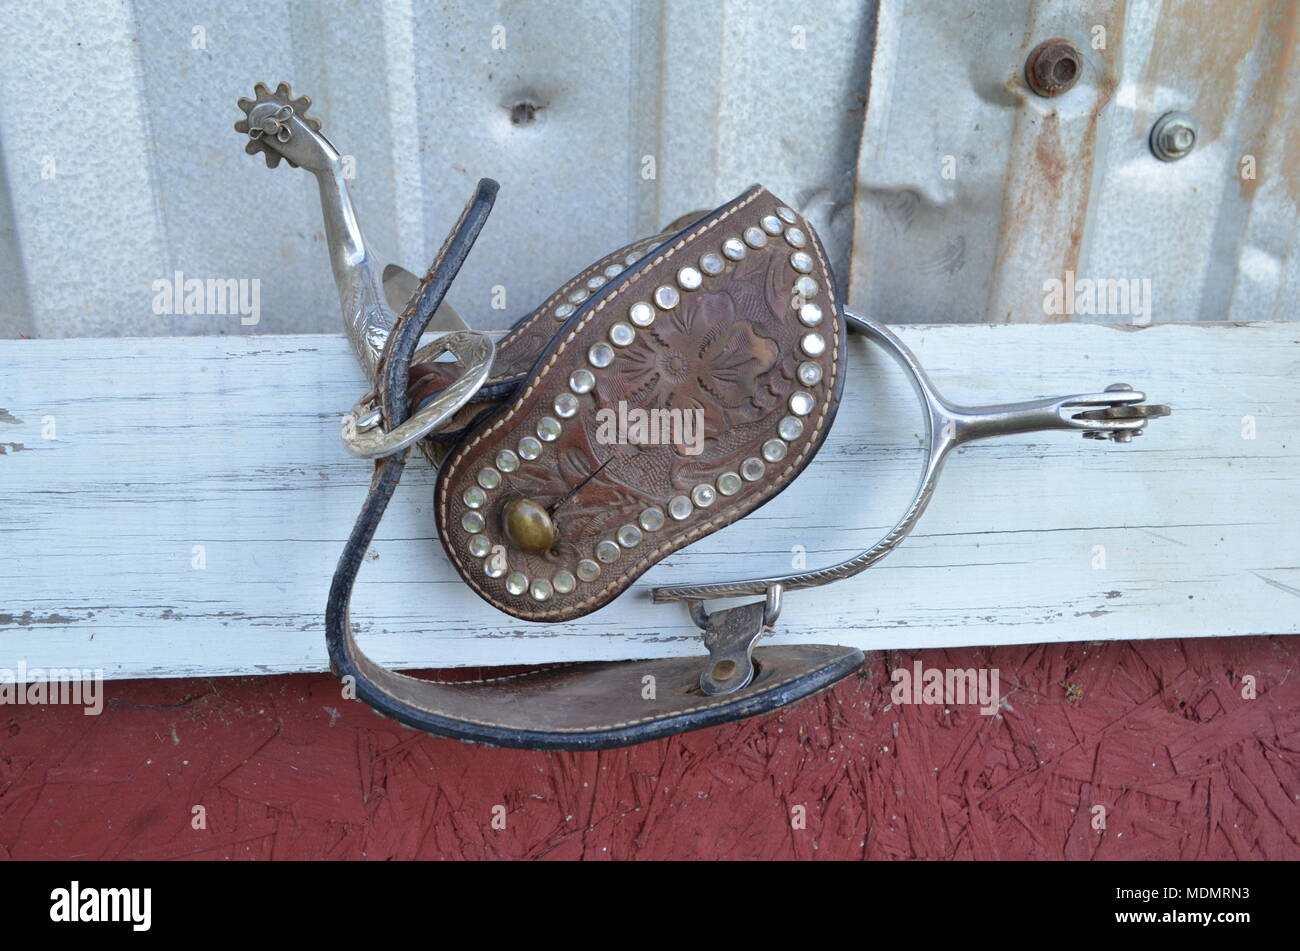 Cowgirl Spurs - Stock Image